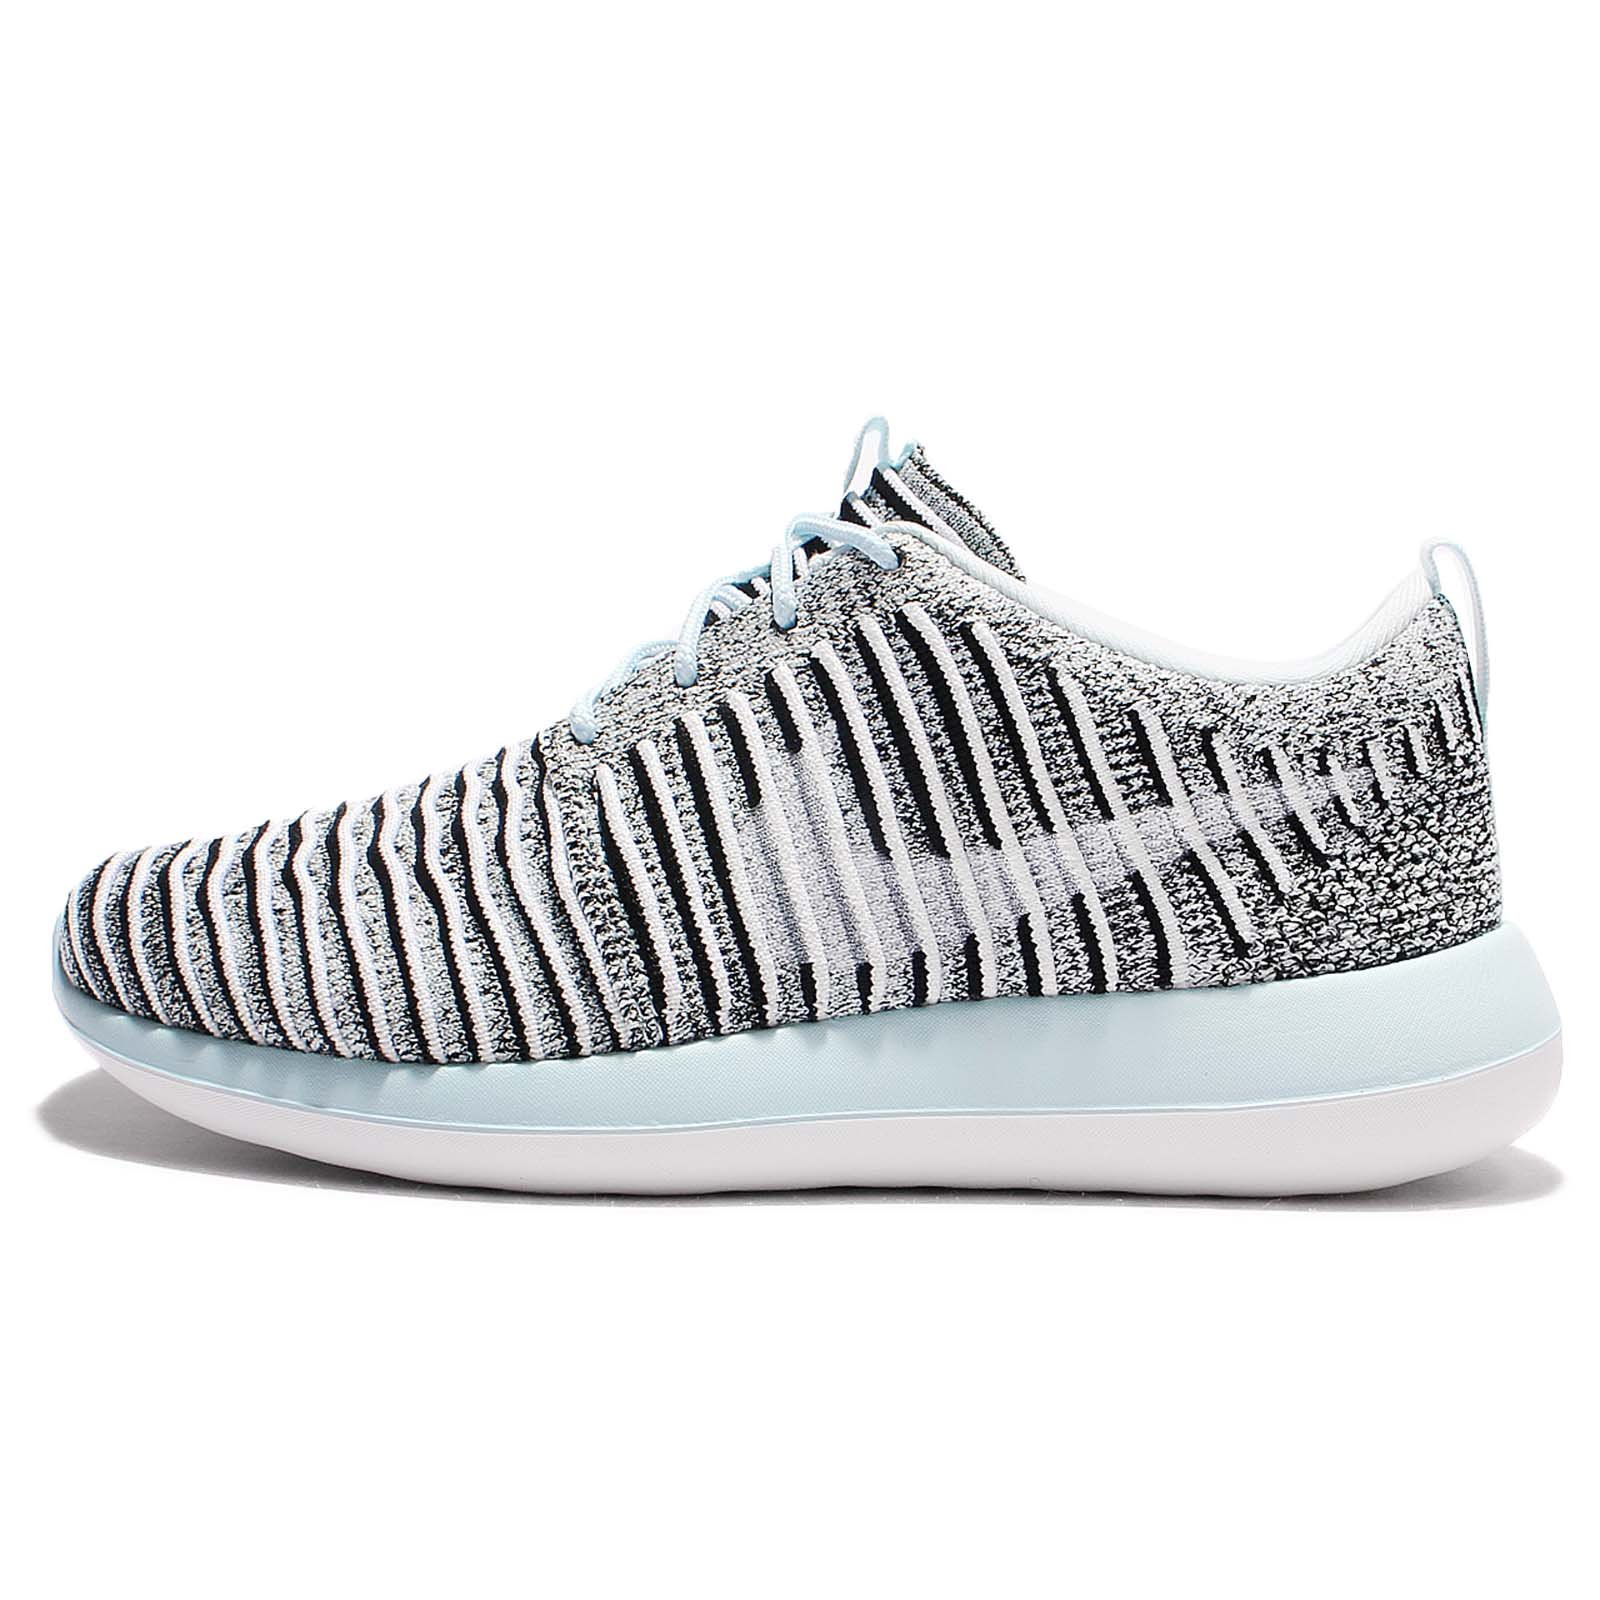 Nike Roshe Two Flyknit Womens Running Shoes 844929 004 Wolf